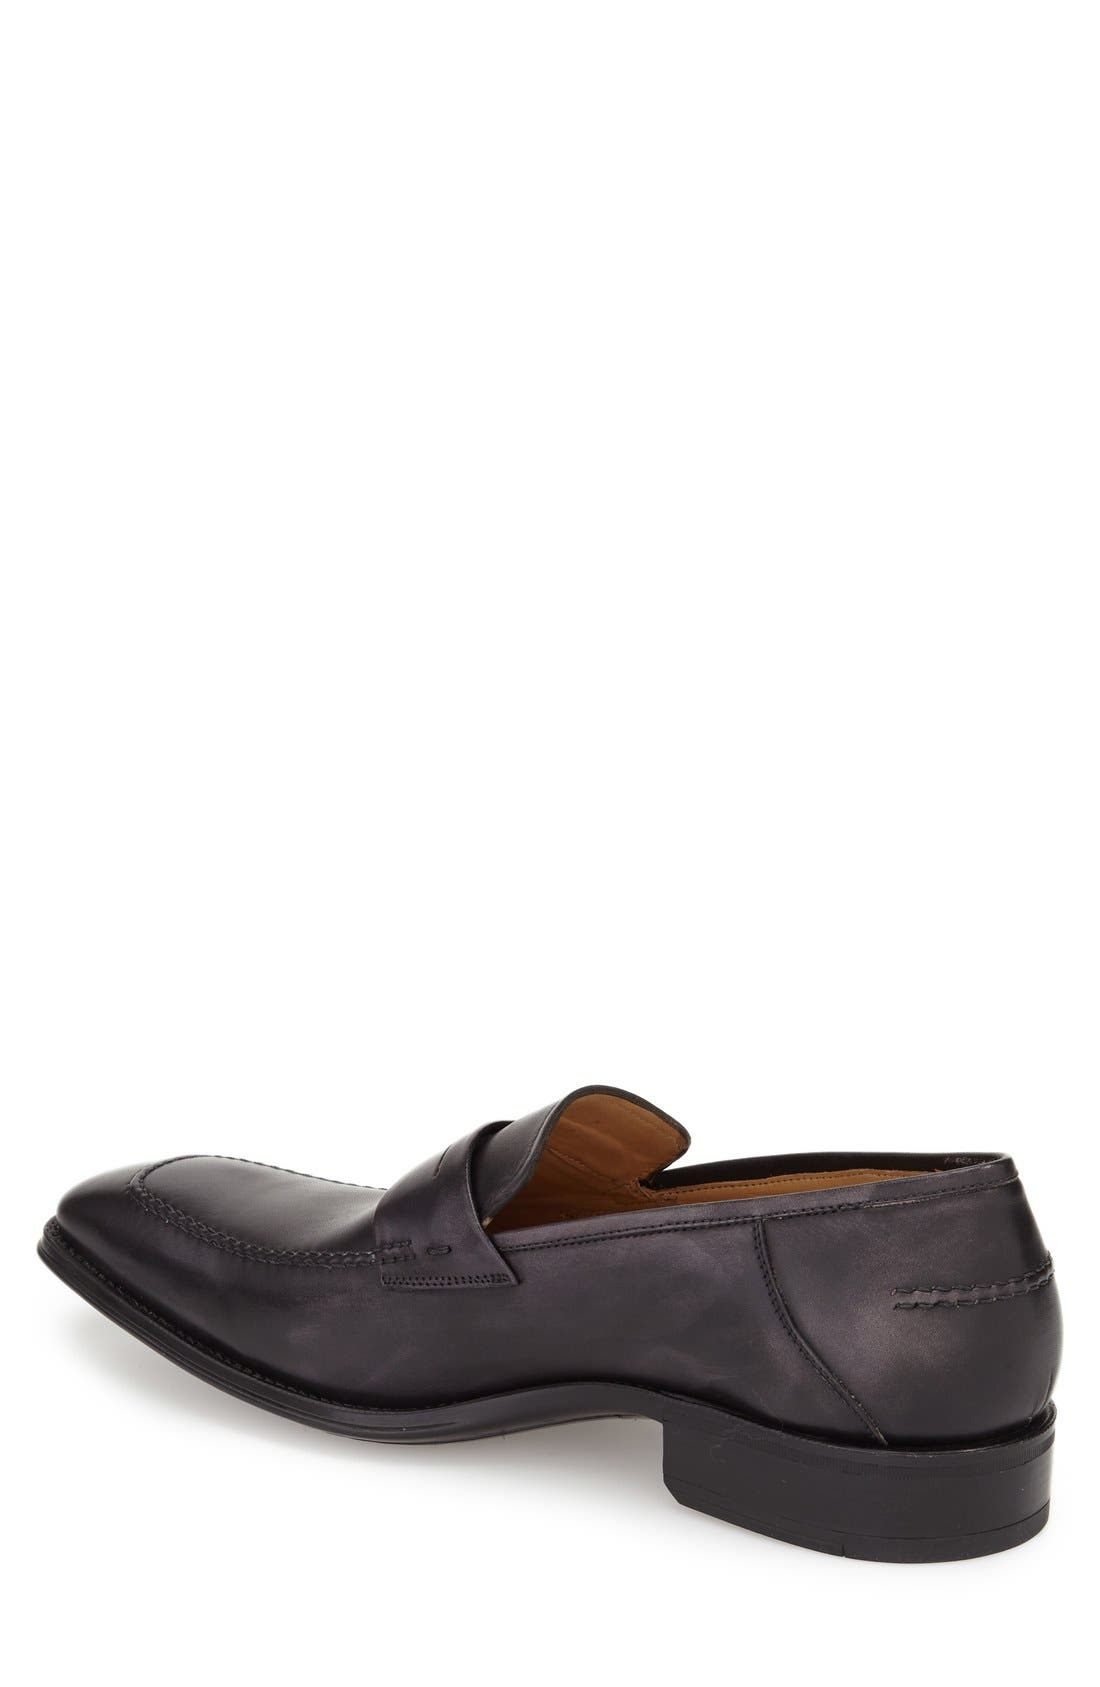 'Trento' Penny Loafer,                             Alternate thumbnail 5, color,